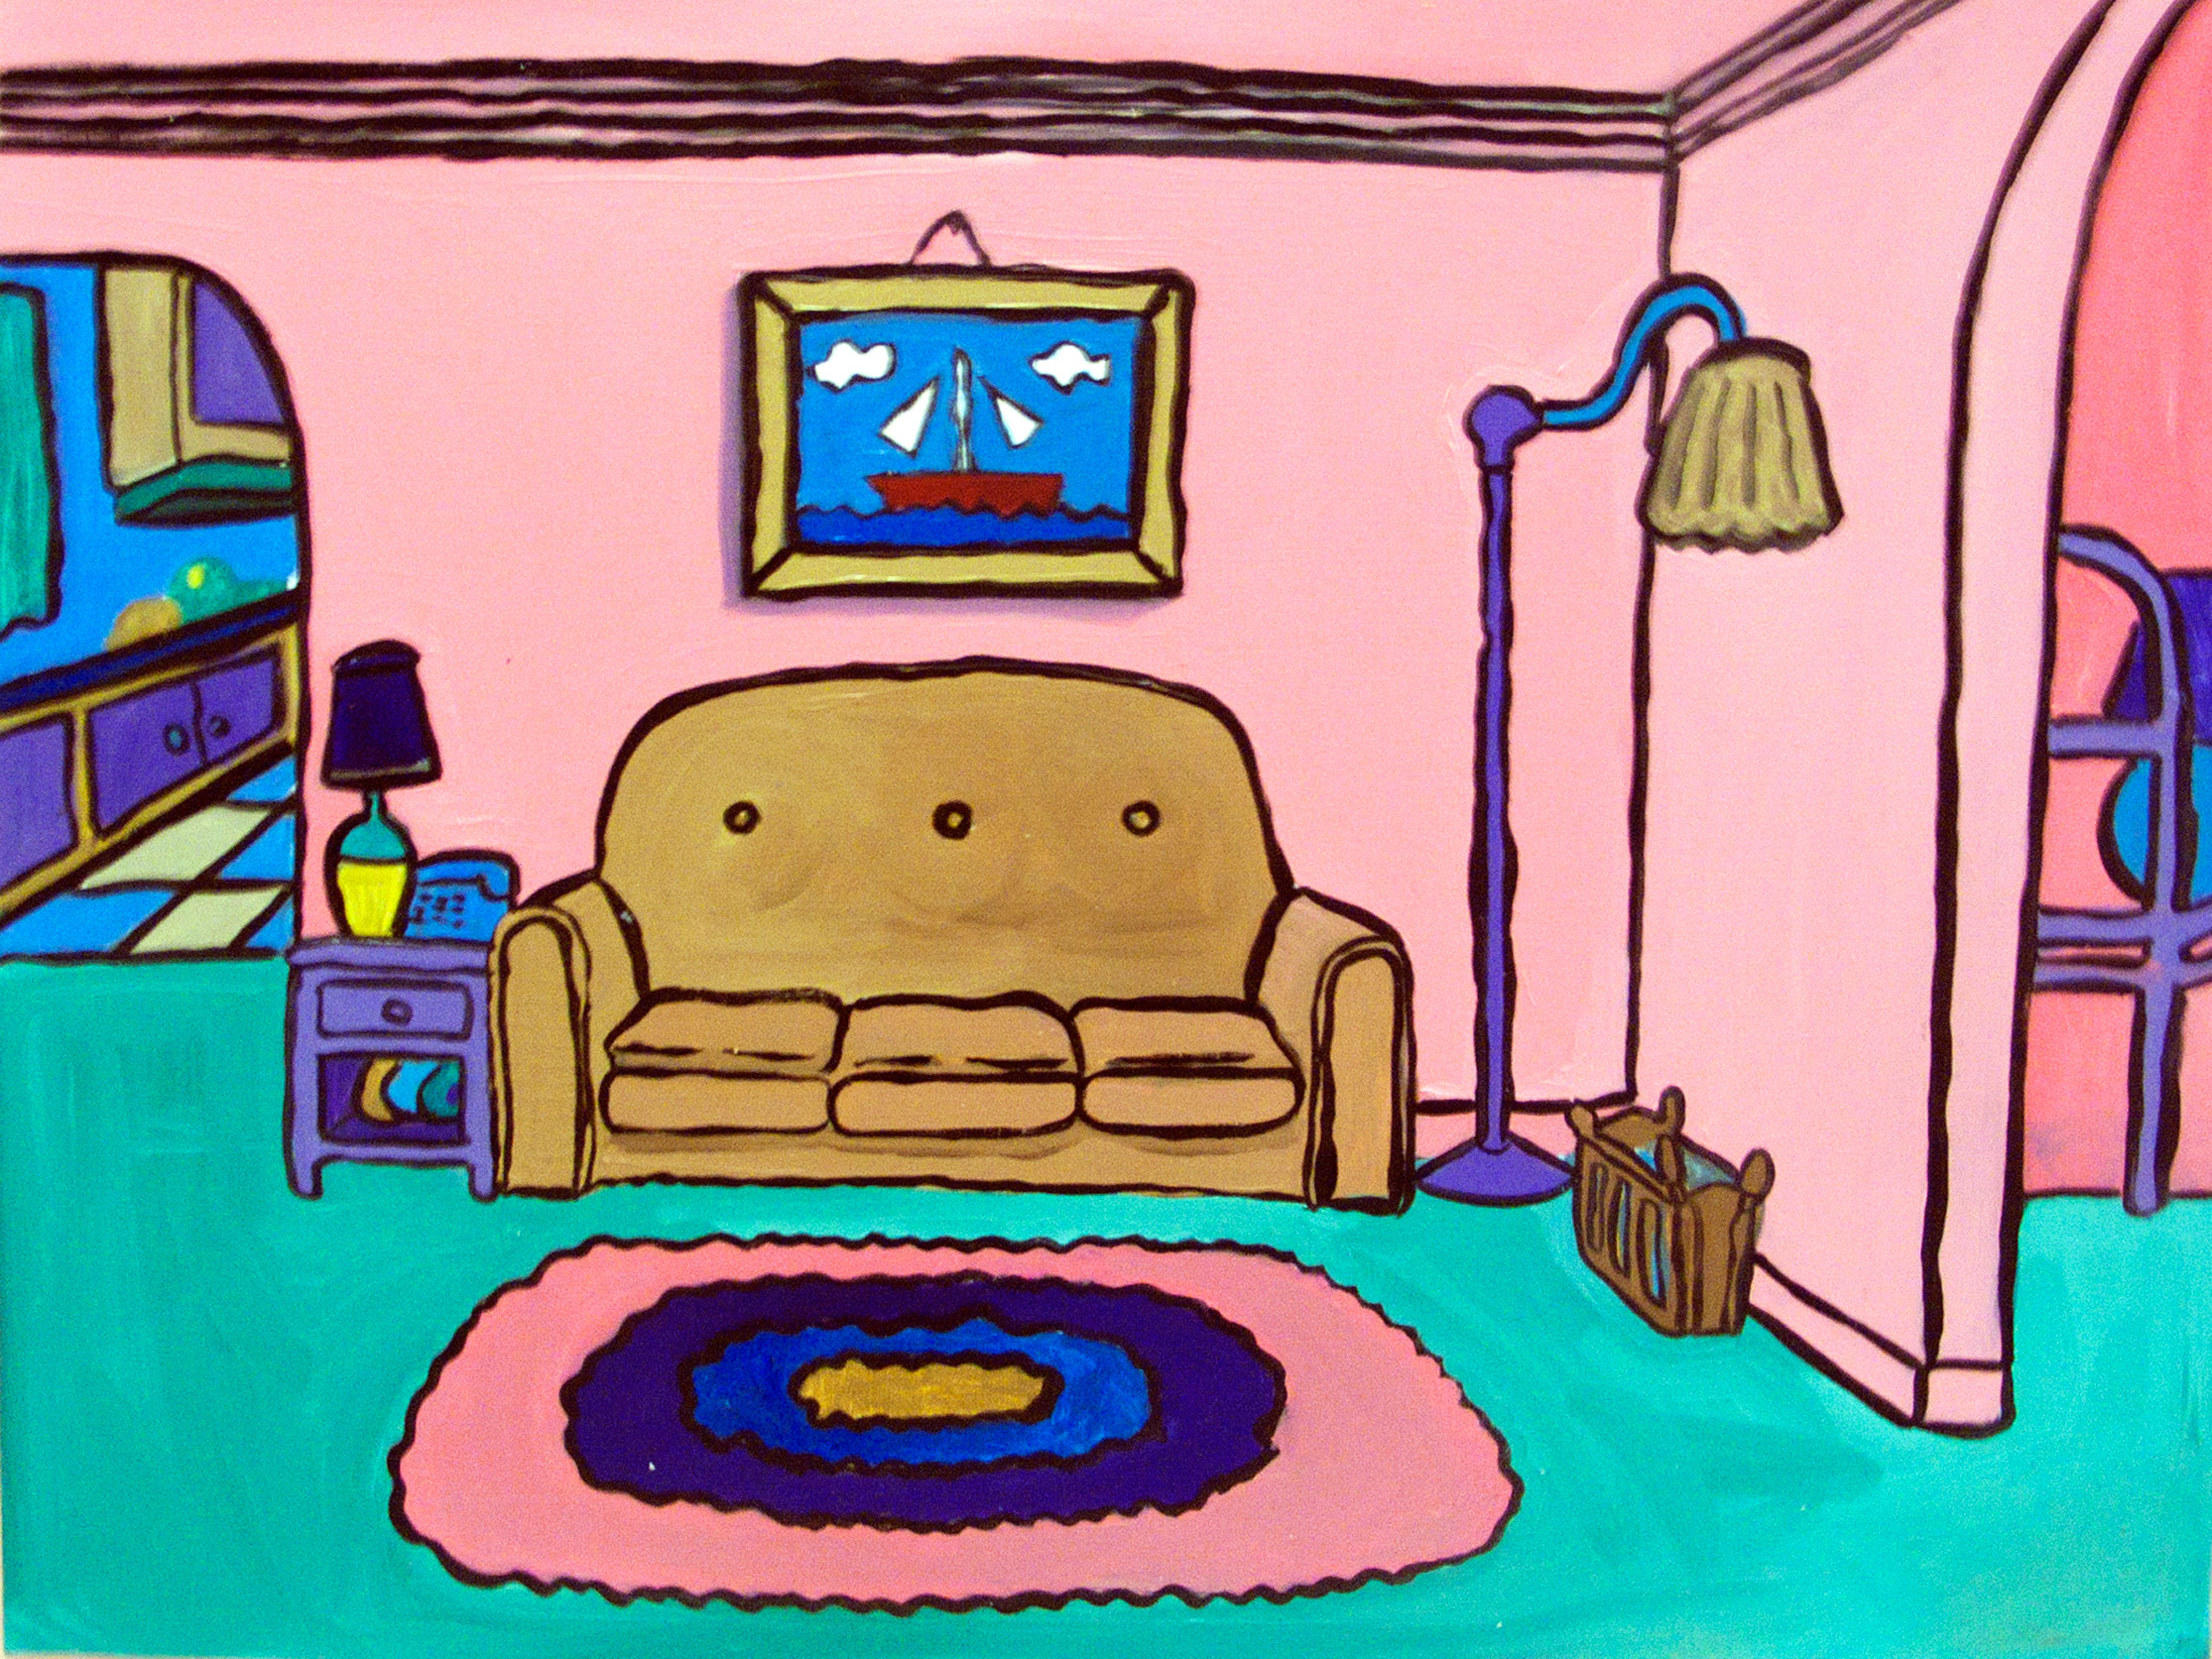 The Simpsonsu0027 Living Room. Images Courtesy The Artist